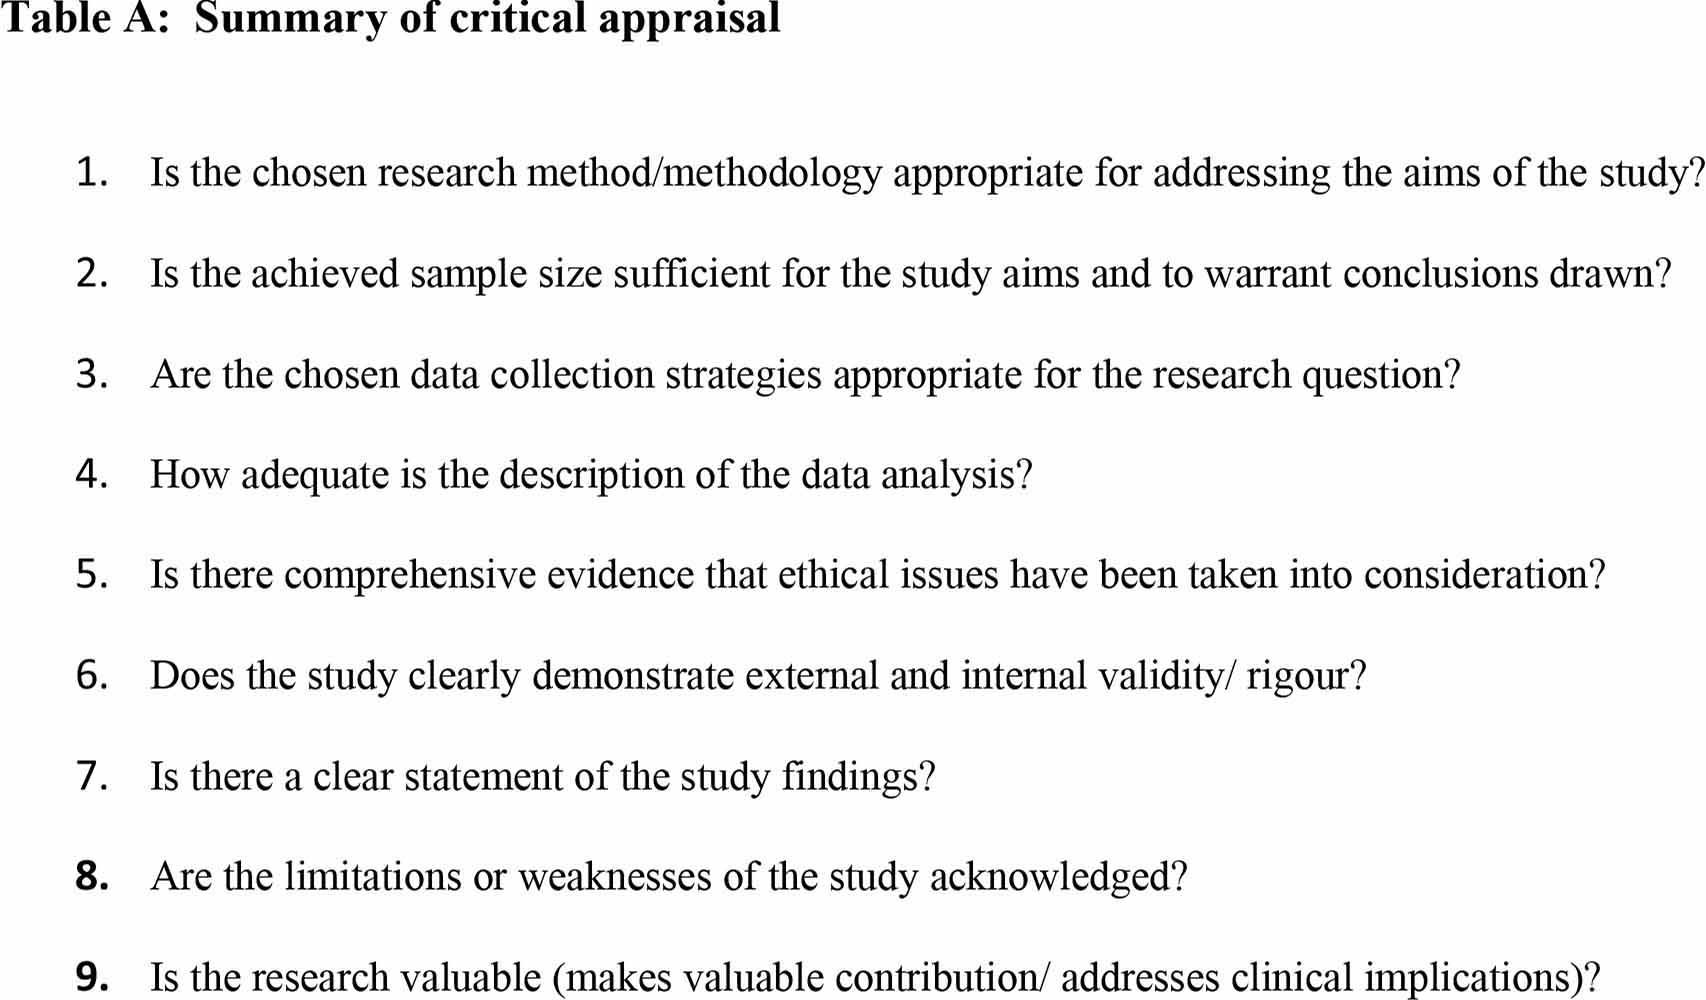 Summary of critical appraisal